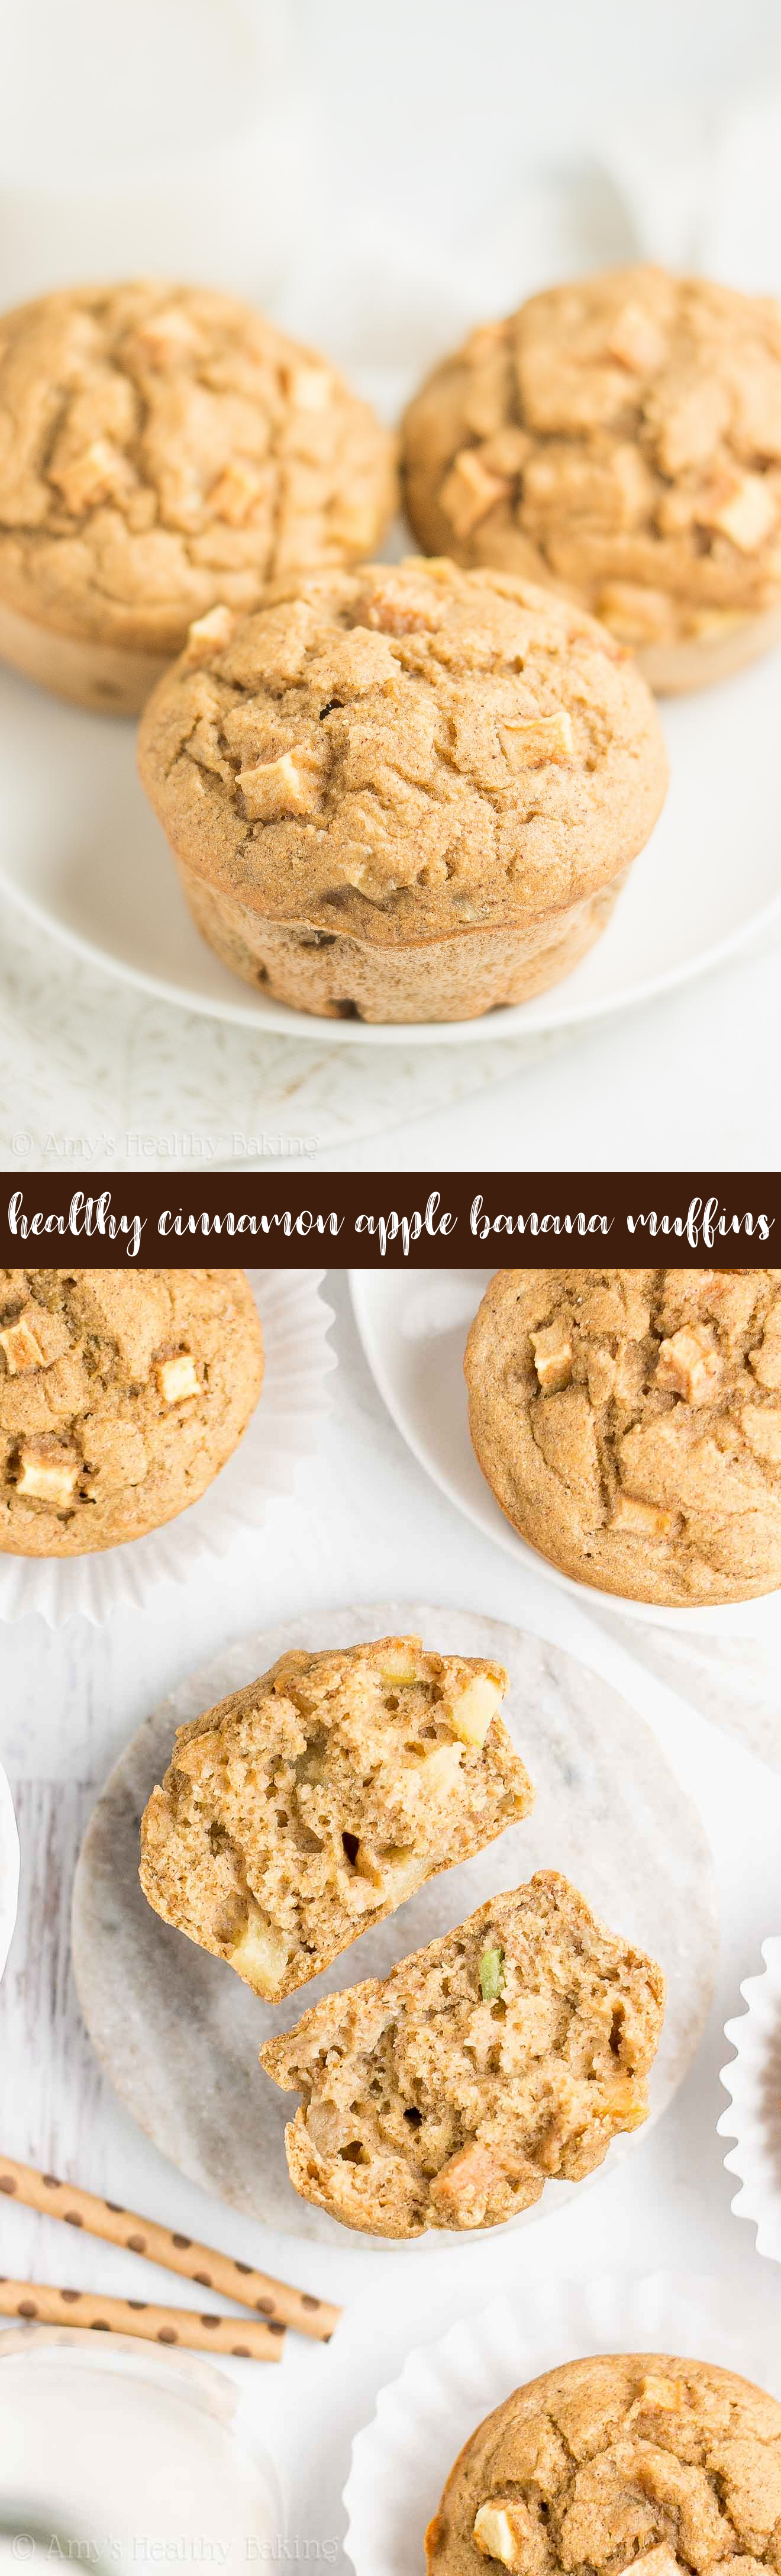 The Best Healthy Cinnamon Apple Banana Muffins